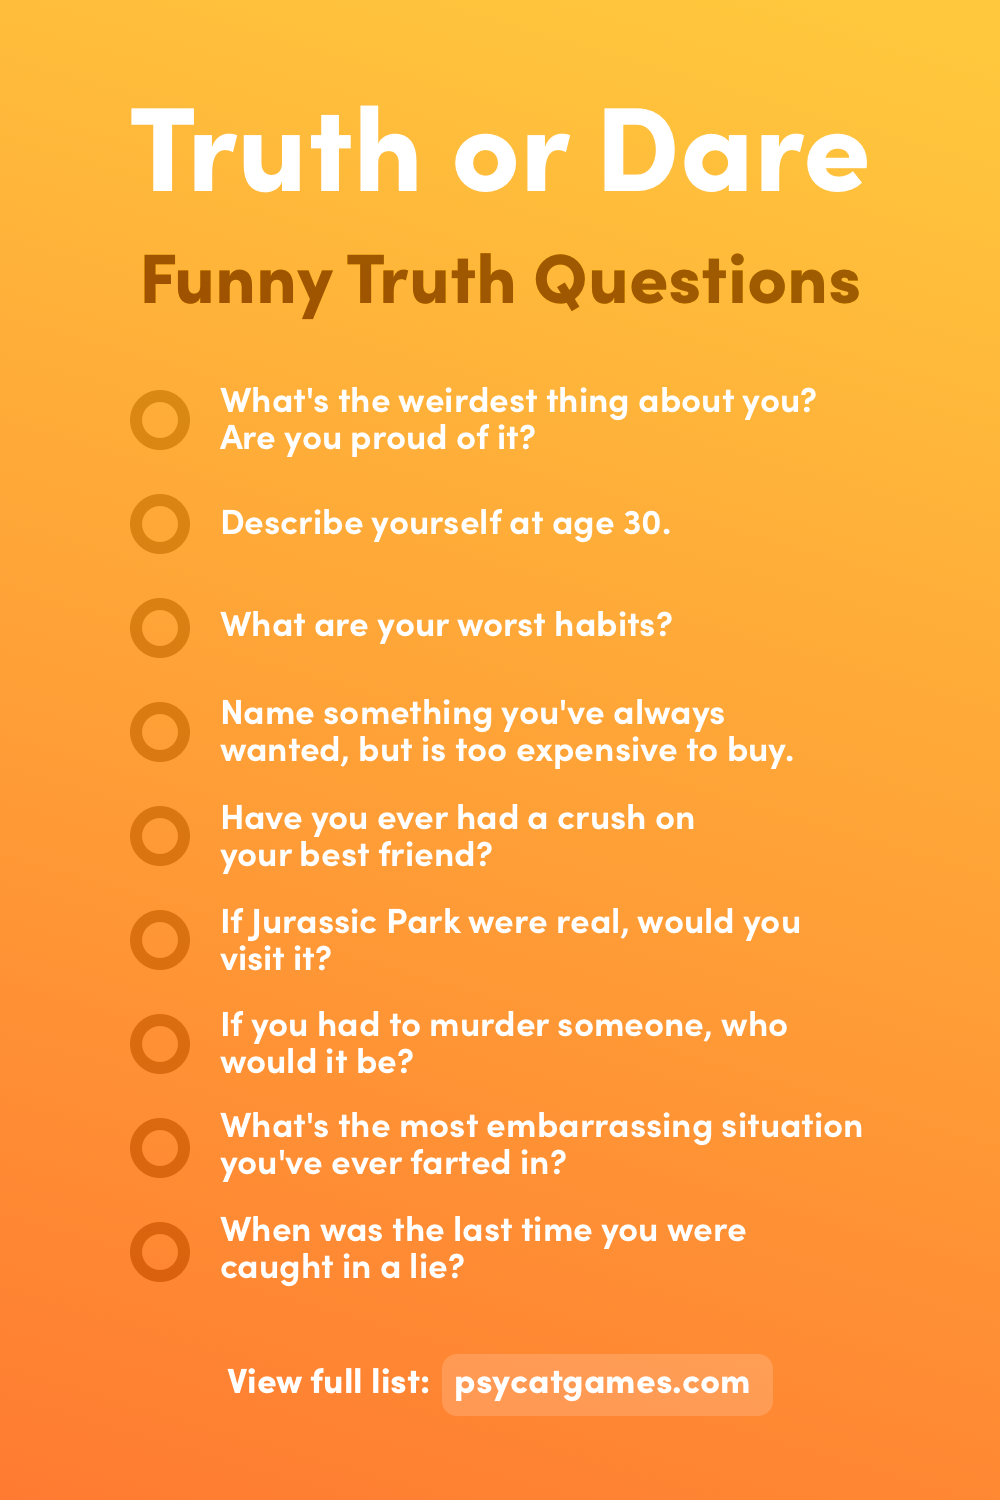 Funny Truth or Dare Questions (Truths)